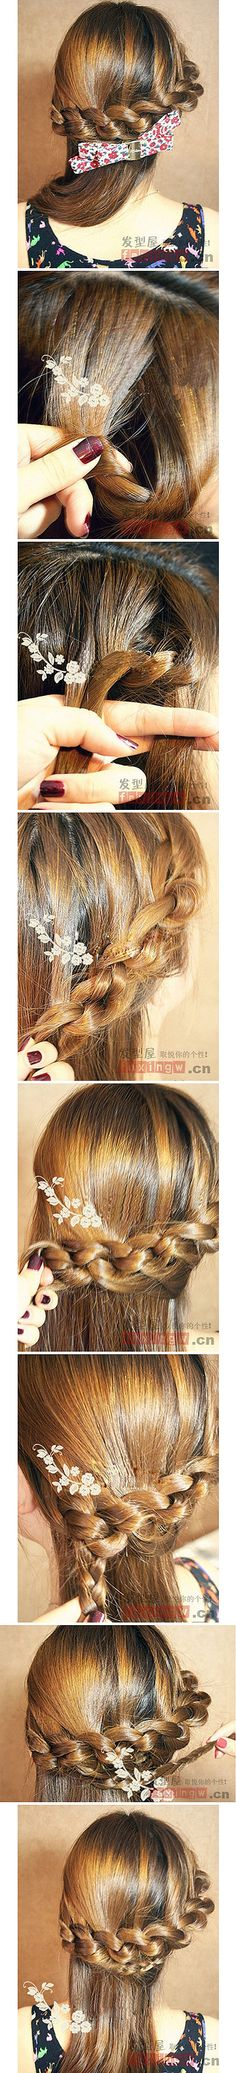 How tO Style Half Up LacE KnOt Braid. YOu can alsO create a Bun fOr the rest Of the hair, I think it wOuld bE LOvEly tOO